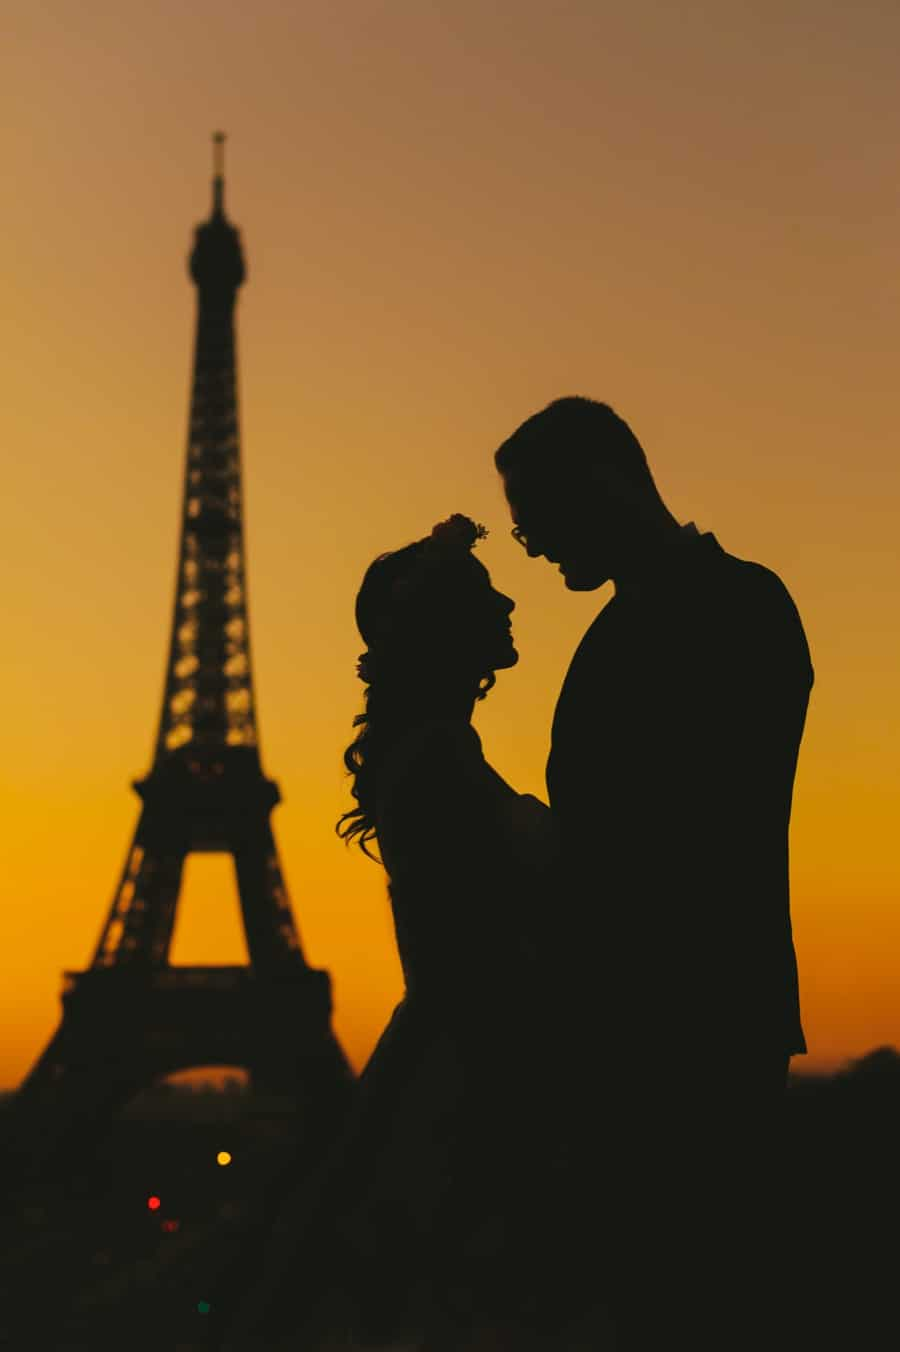 hochzeitsfotograf_thomasschwede_after_wedding_paris_0458